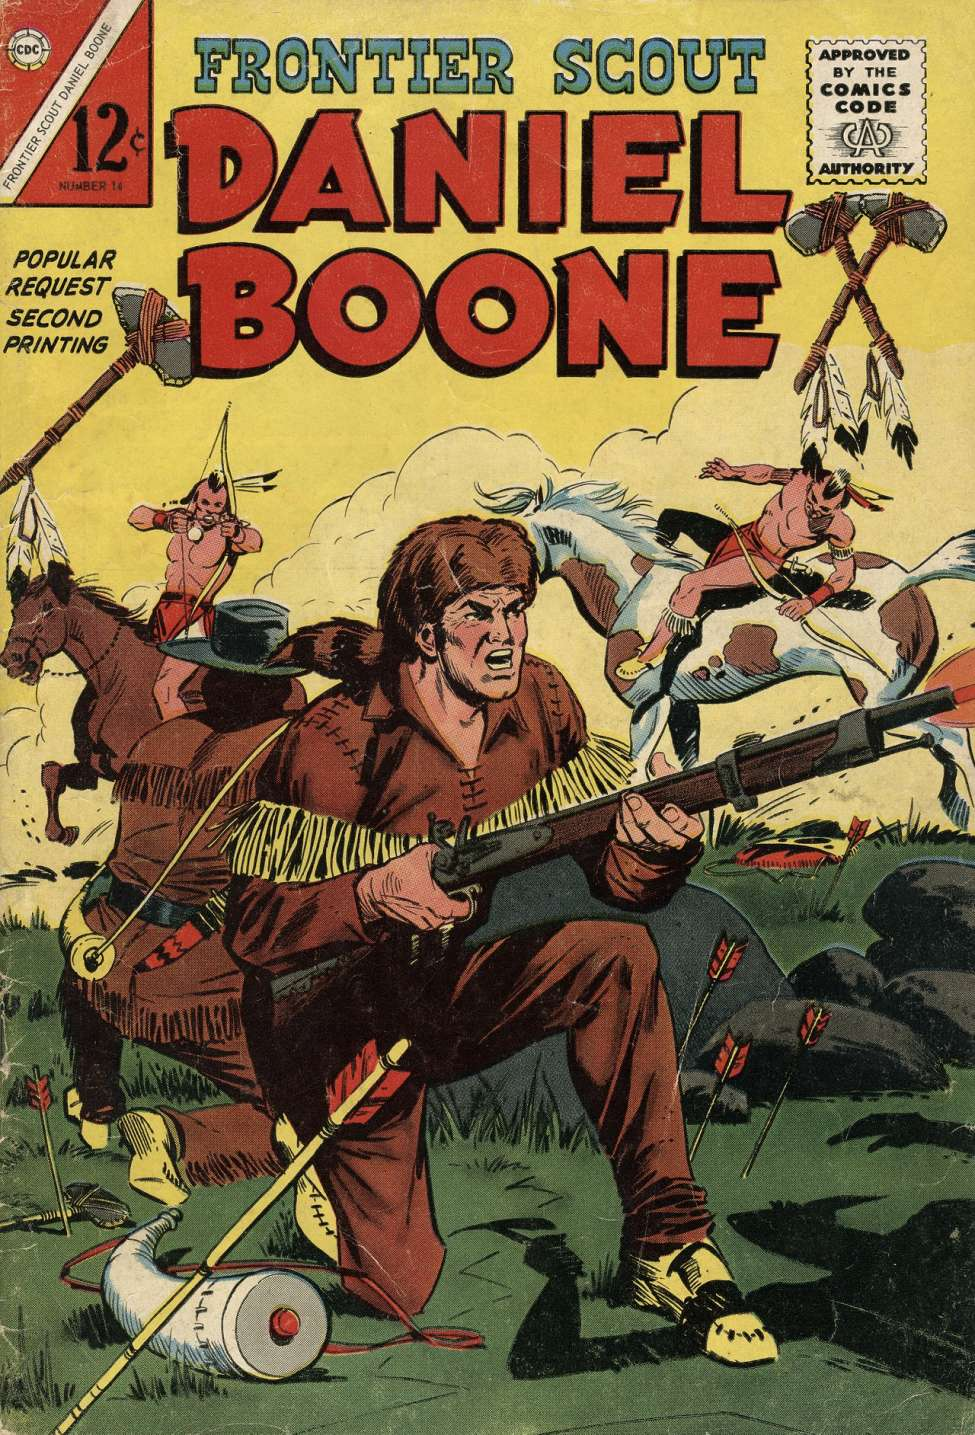 Comic Book Cover For Frontier Scout, Dan'l Boone 14